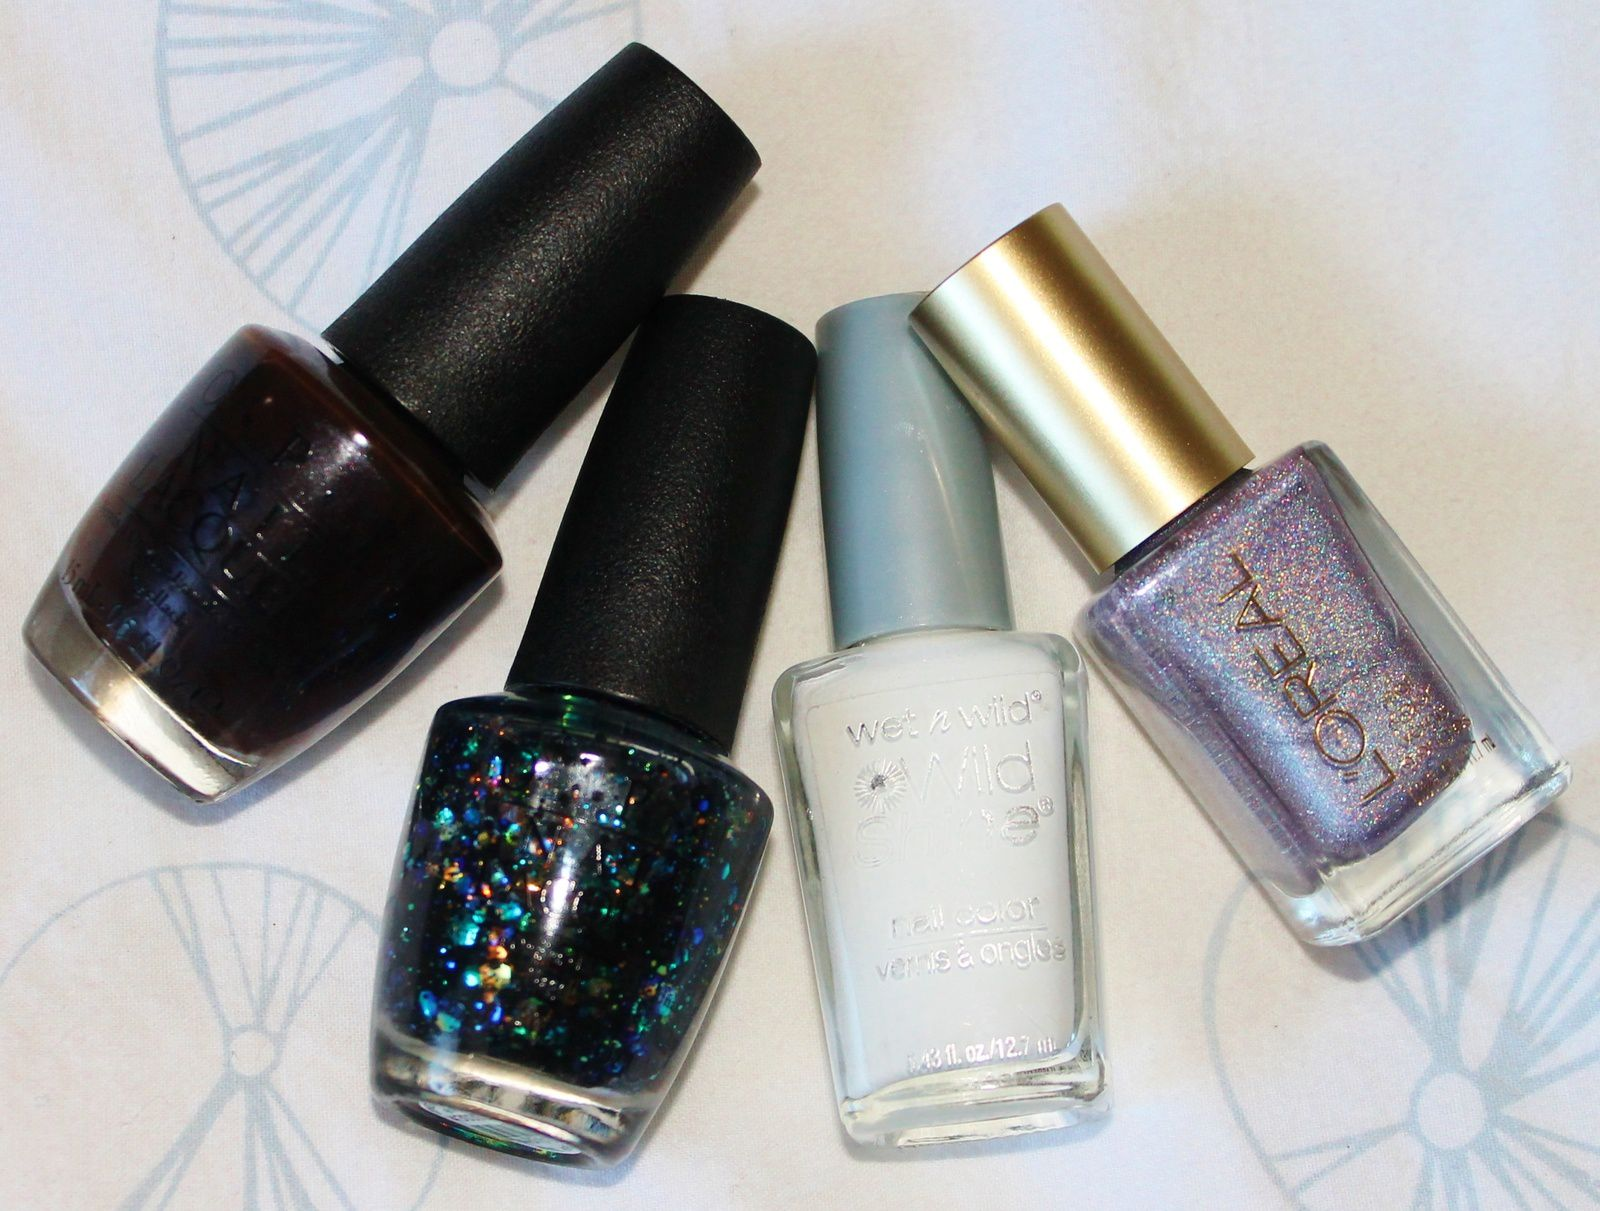 Sally Hansen Complete Care 4-in-1 Extra Moisturizing Nail Treatment / OPI Love is Hot and Coal / L'Oréal Masked Affair / Wet'n Wild White 449C + OPI Comet in the Sky / HK Girl Top Coat